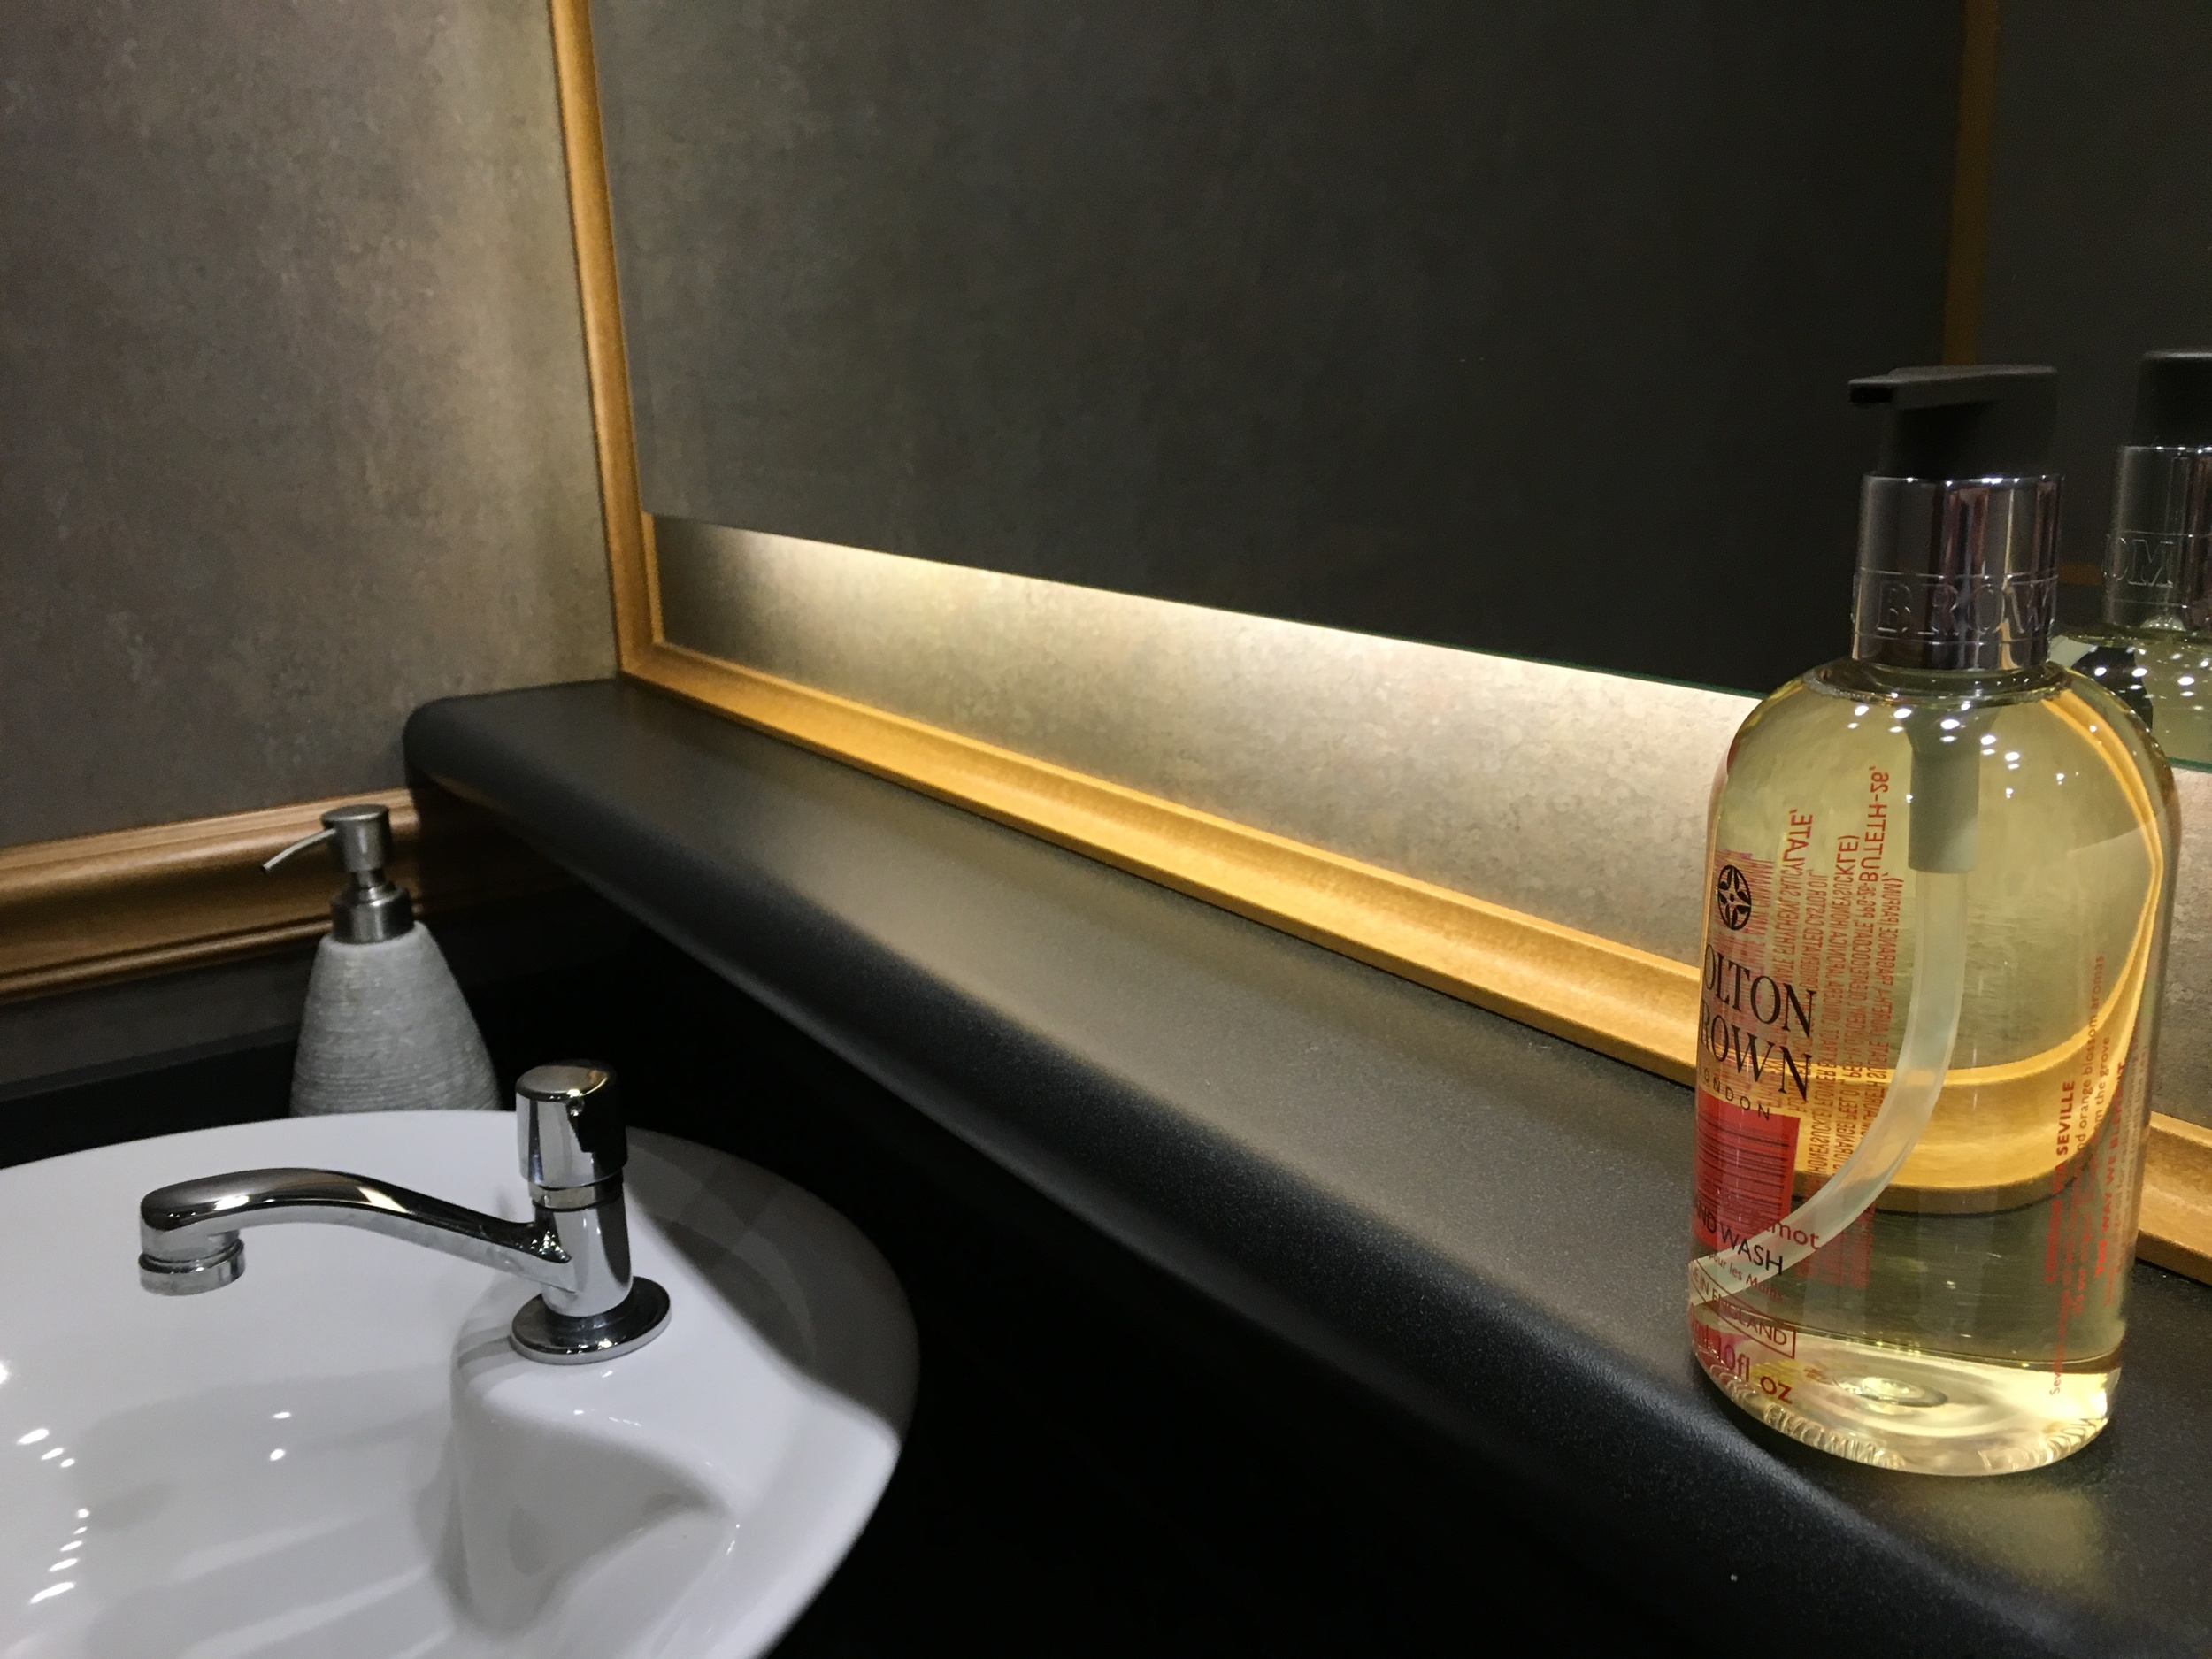 Every restroom is stationed with Molton Brown hand wash, the quintessential British luxury skincare brand.